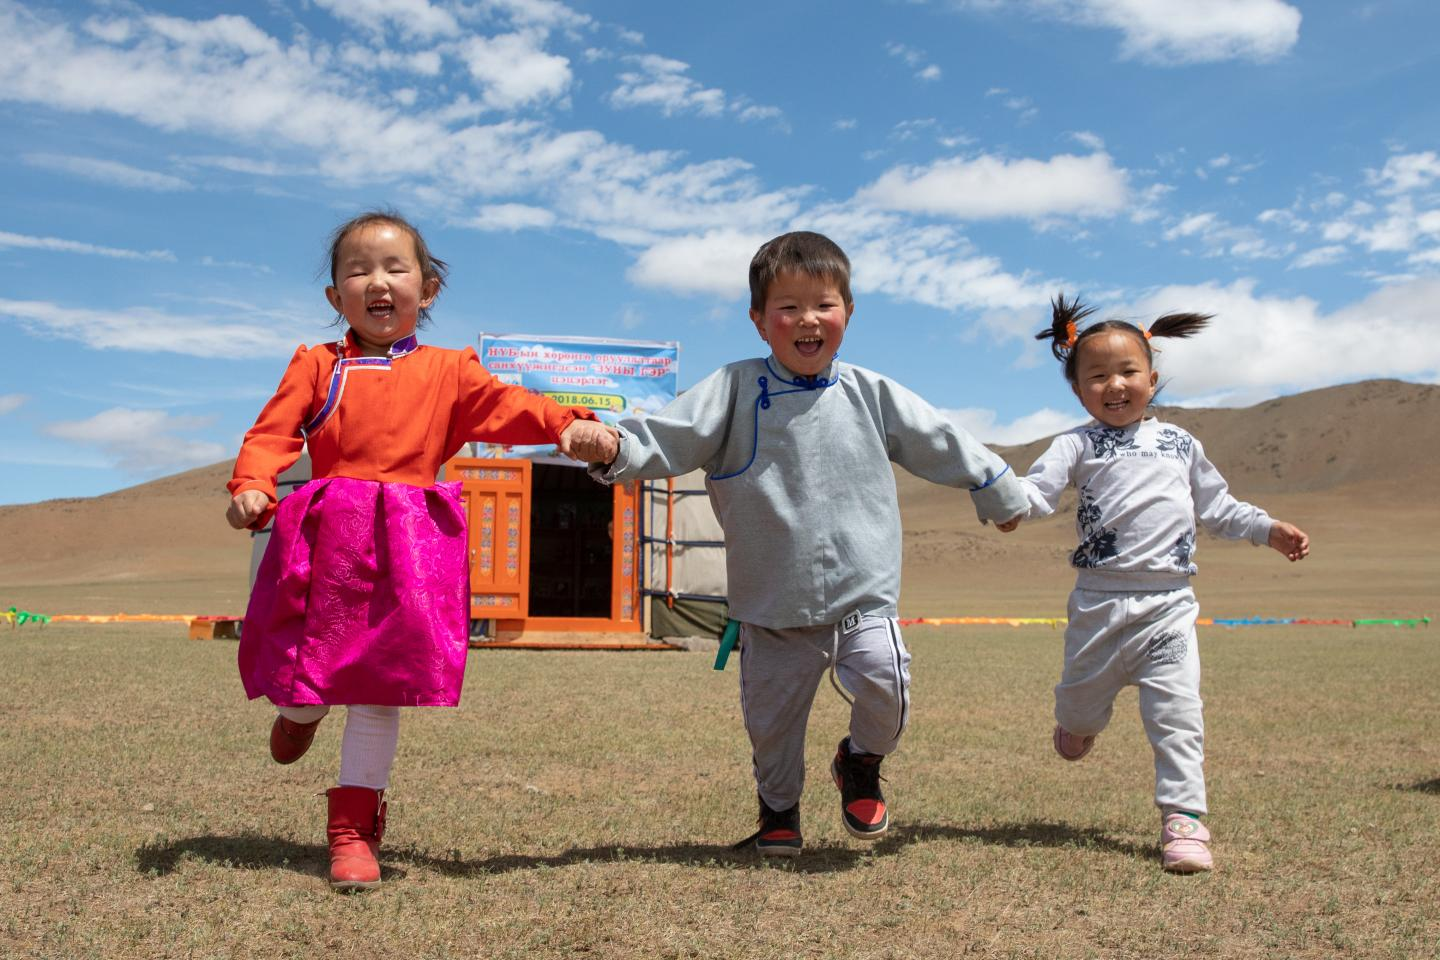 Convention on the Rights of the Child: Three children run outside a mobile kindergarten in Mongolia.